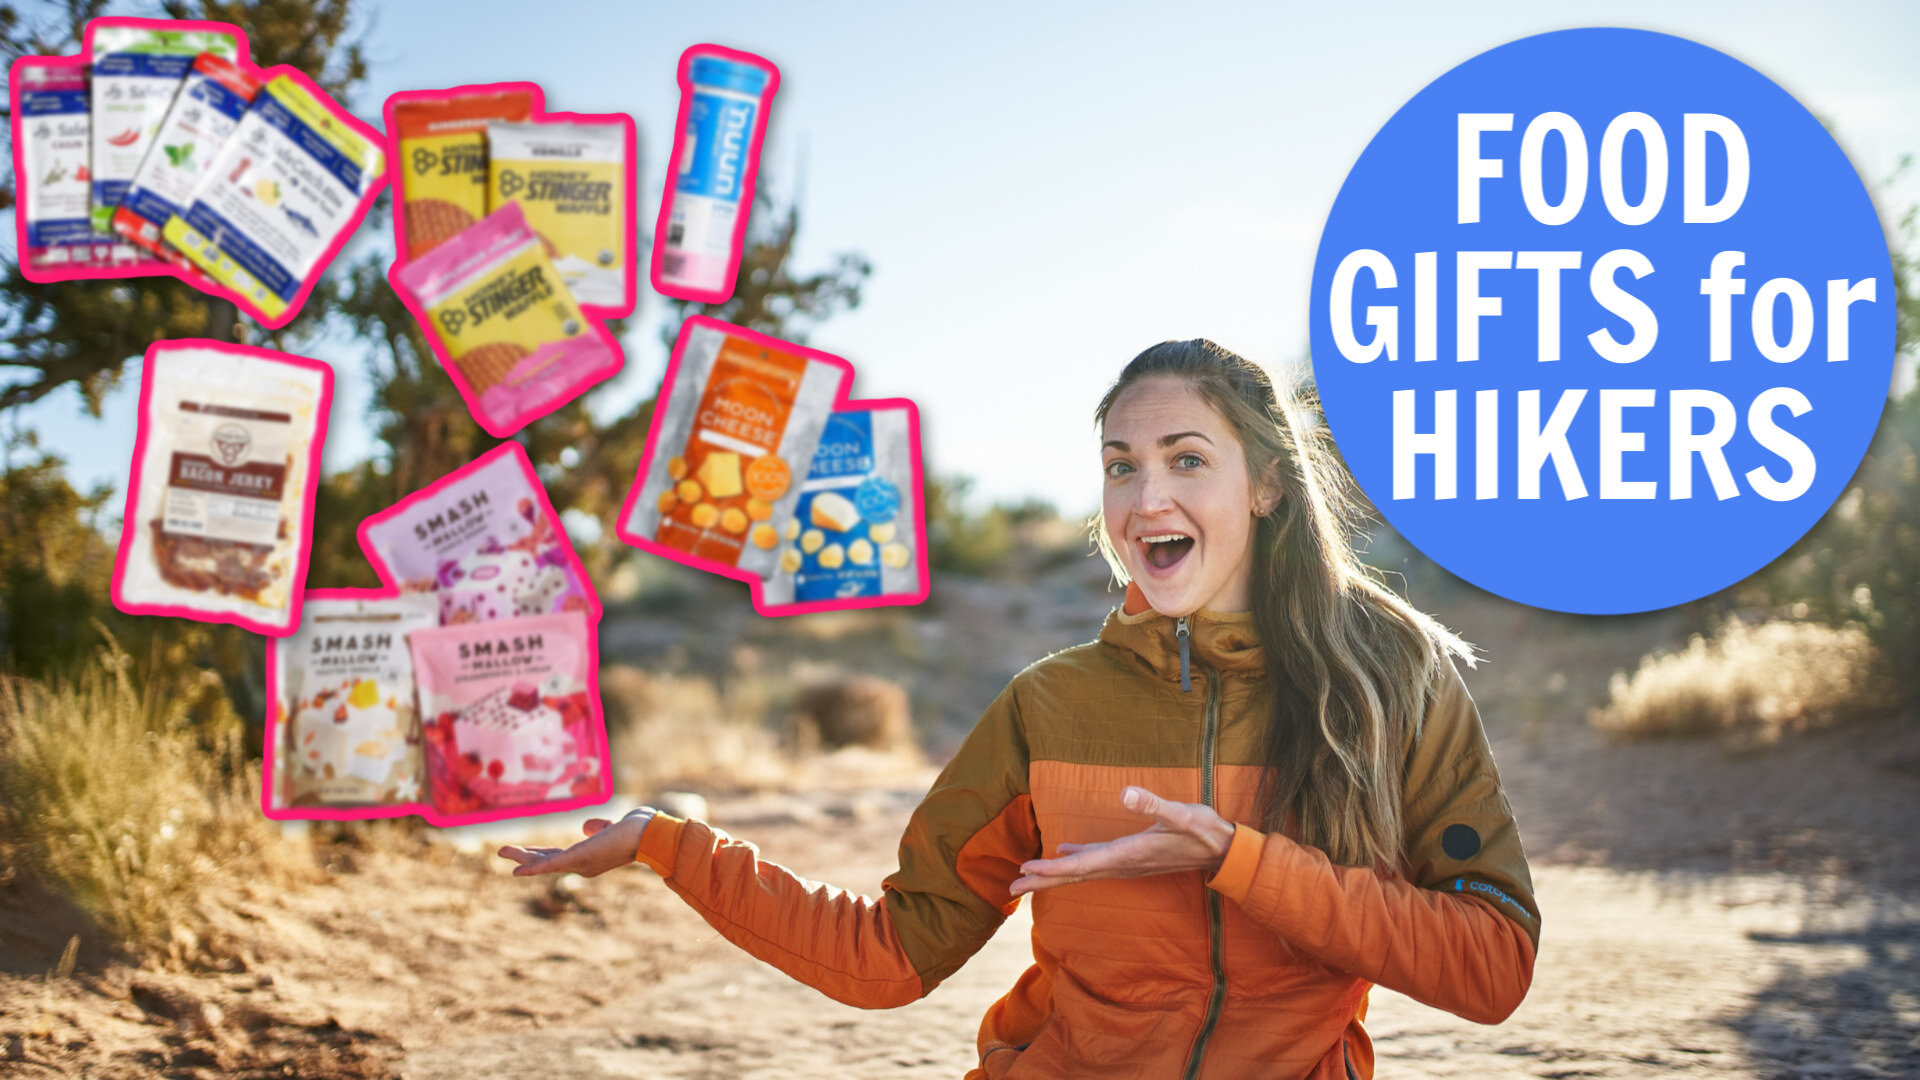 Food Gifts for Hikers and Backpackers